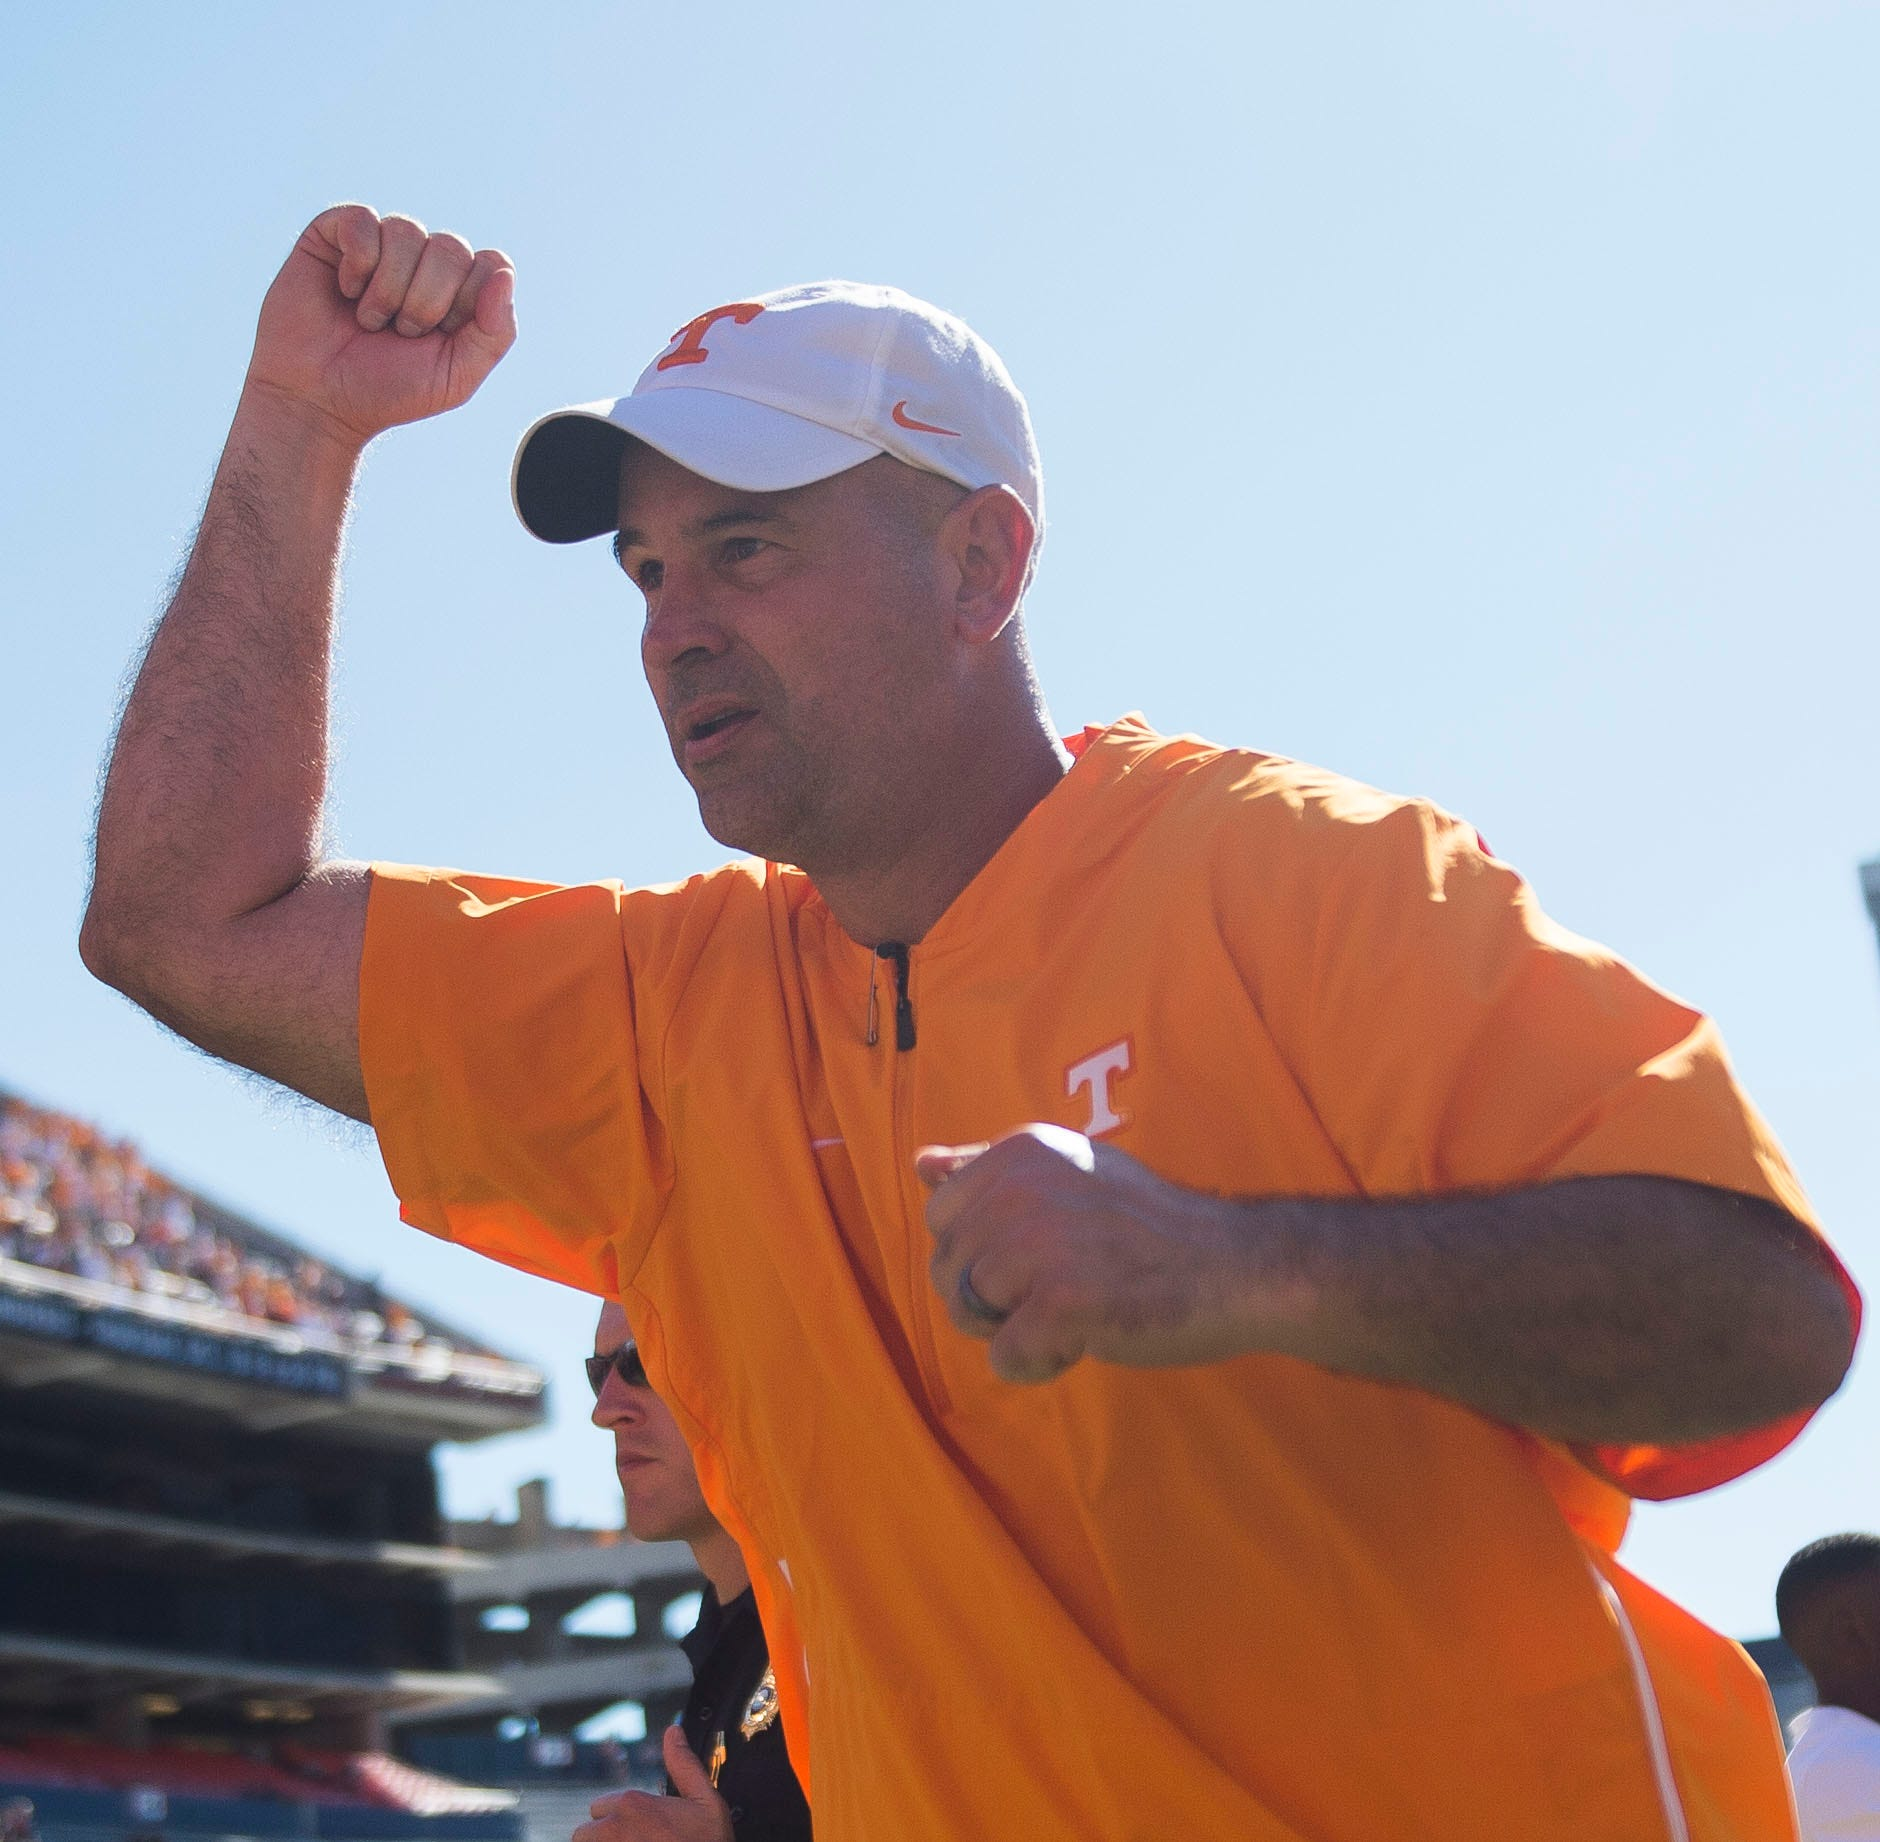 Mike Strange: Can Jeremy Pruitt progress faster with UT Vols than Fulmer? Or Neyland?